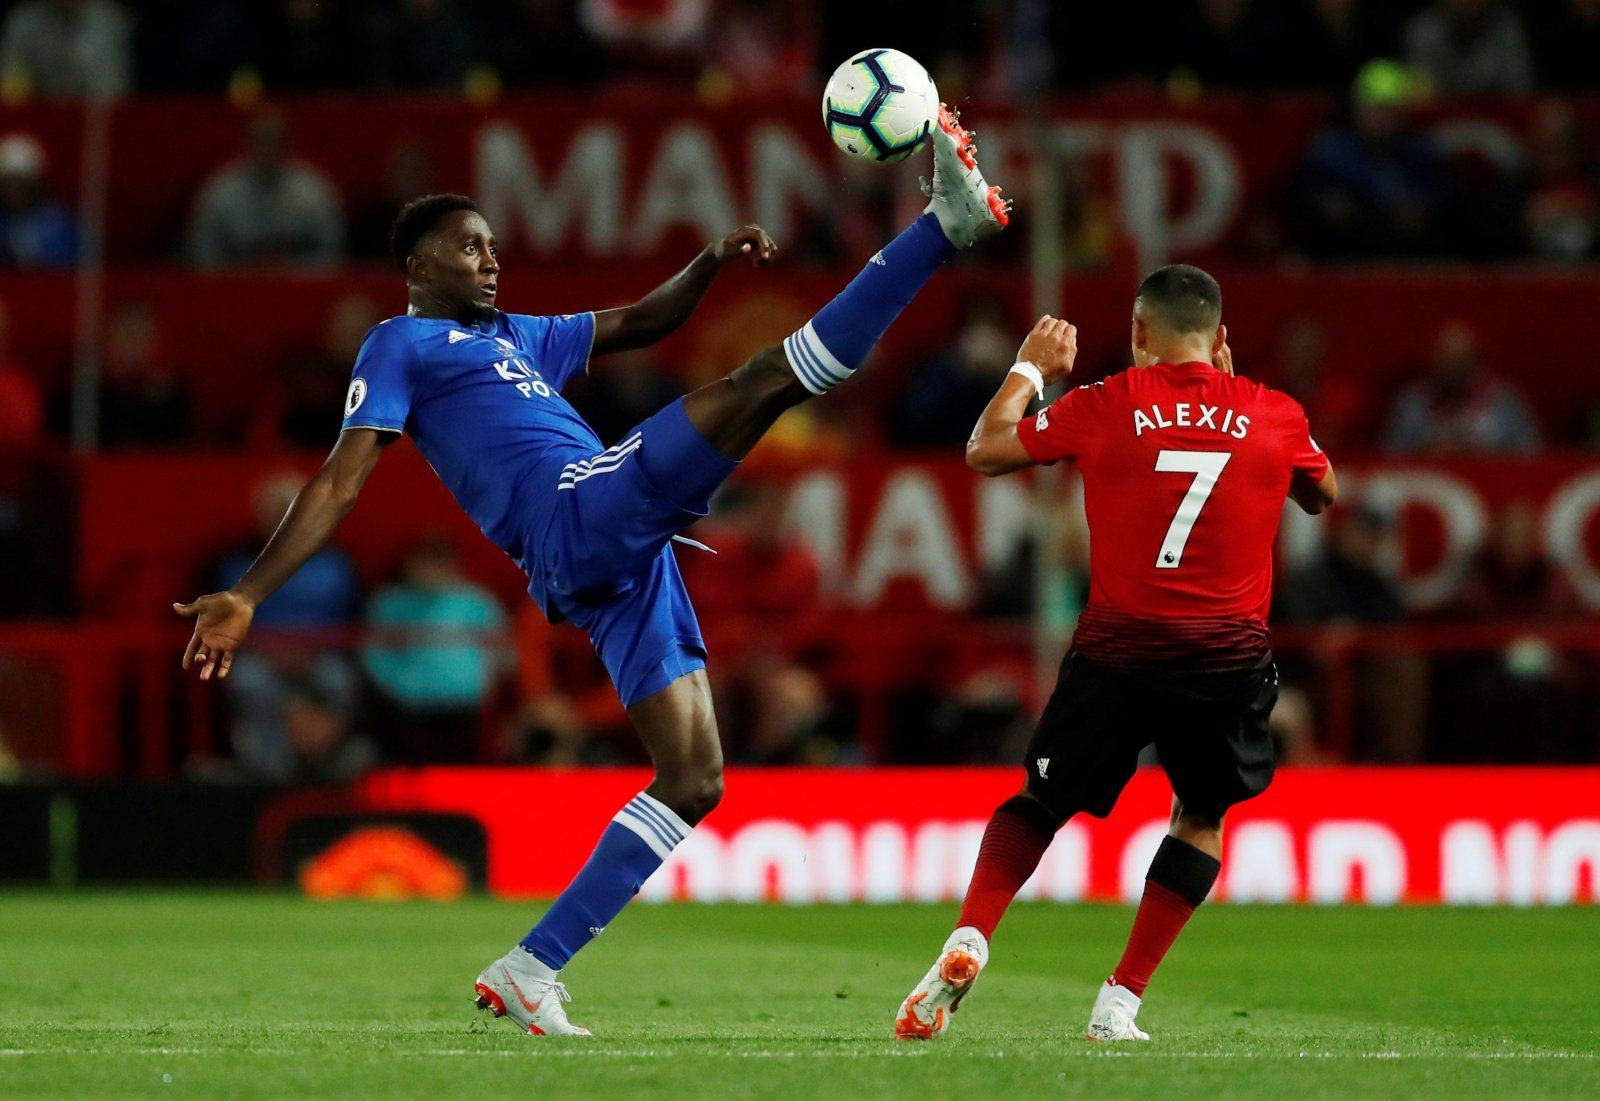 Wilfred Ndidi would be the anarchy amidst Manchester City's artistry